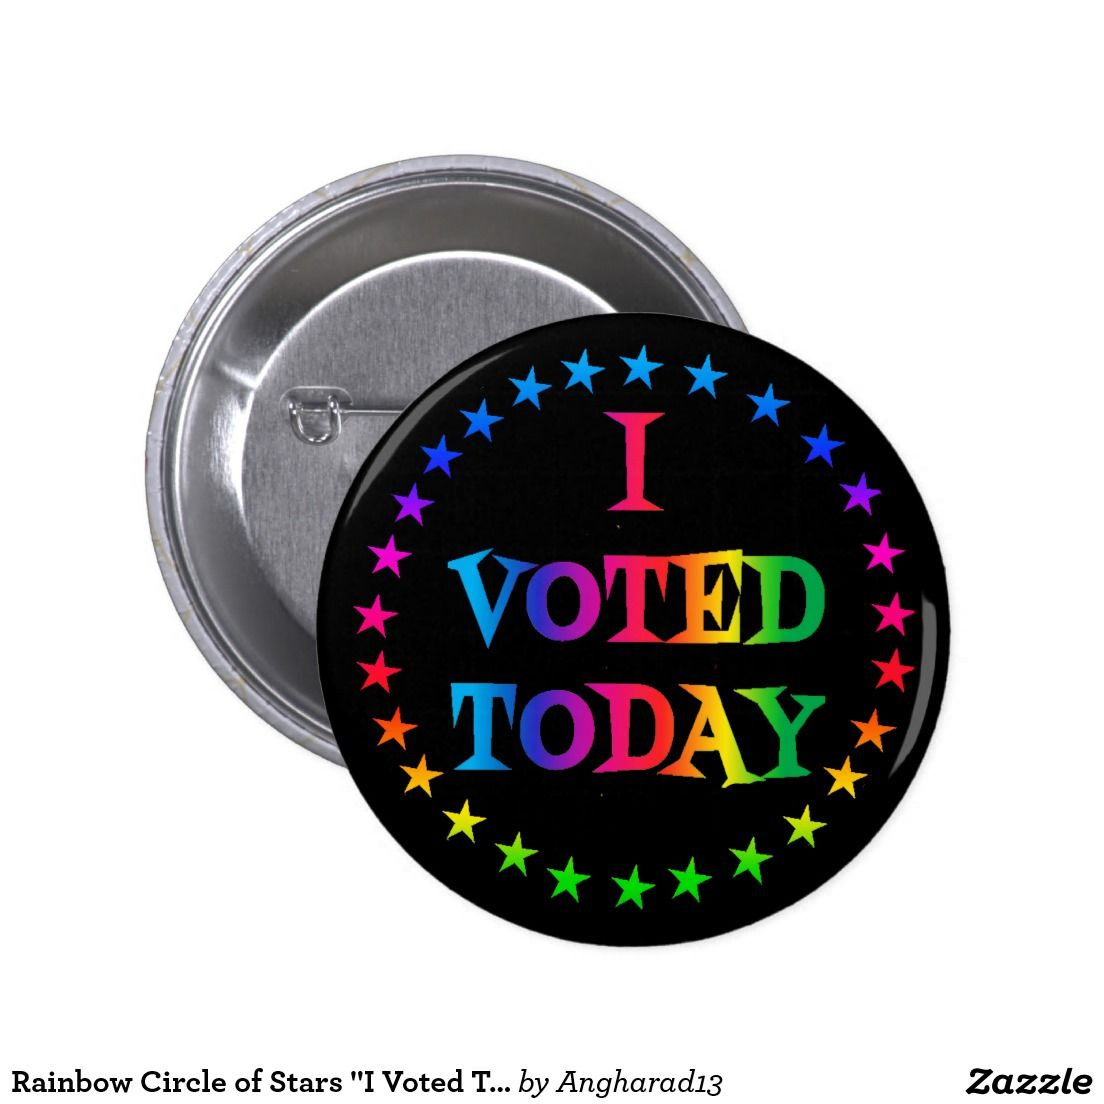 "Rainbow Circle of Stars ""I Voted Today"" LGBT 2.25"" Pinback Button--Find it here: http://www.zazzle.com/rainbow_circle_of_stars_i_voted_today_lgbt_2_25_pinback_button-145752918323291950"